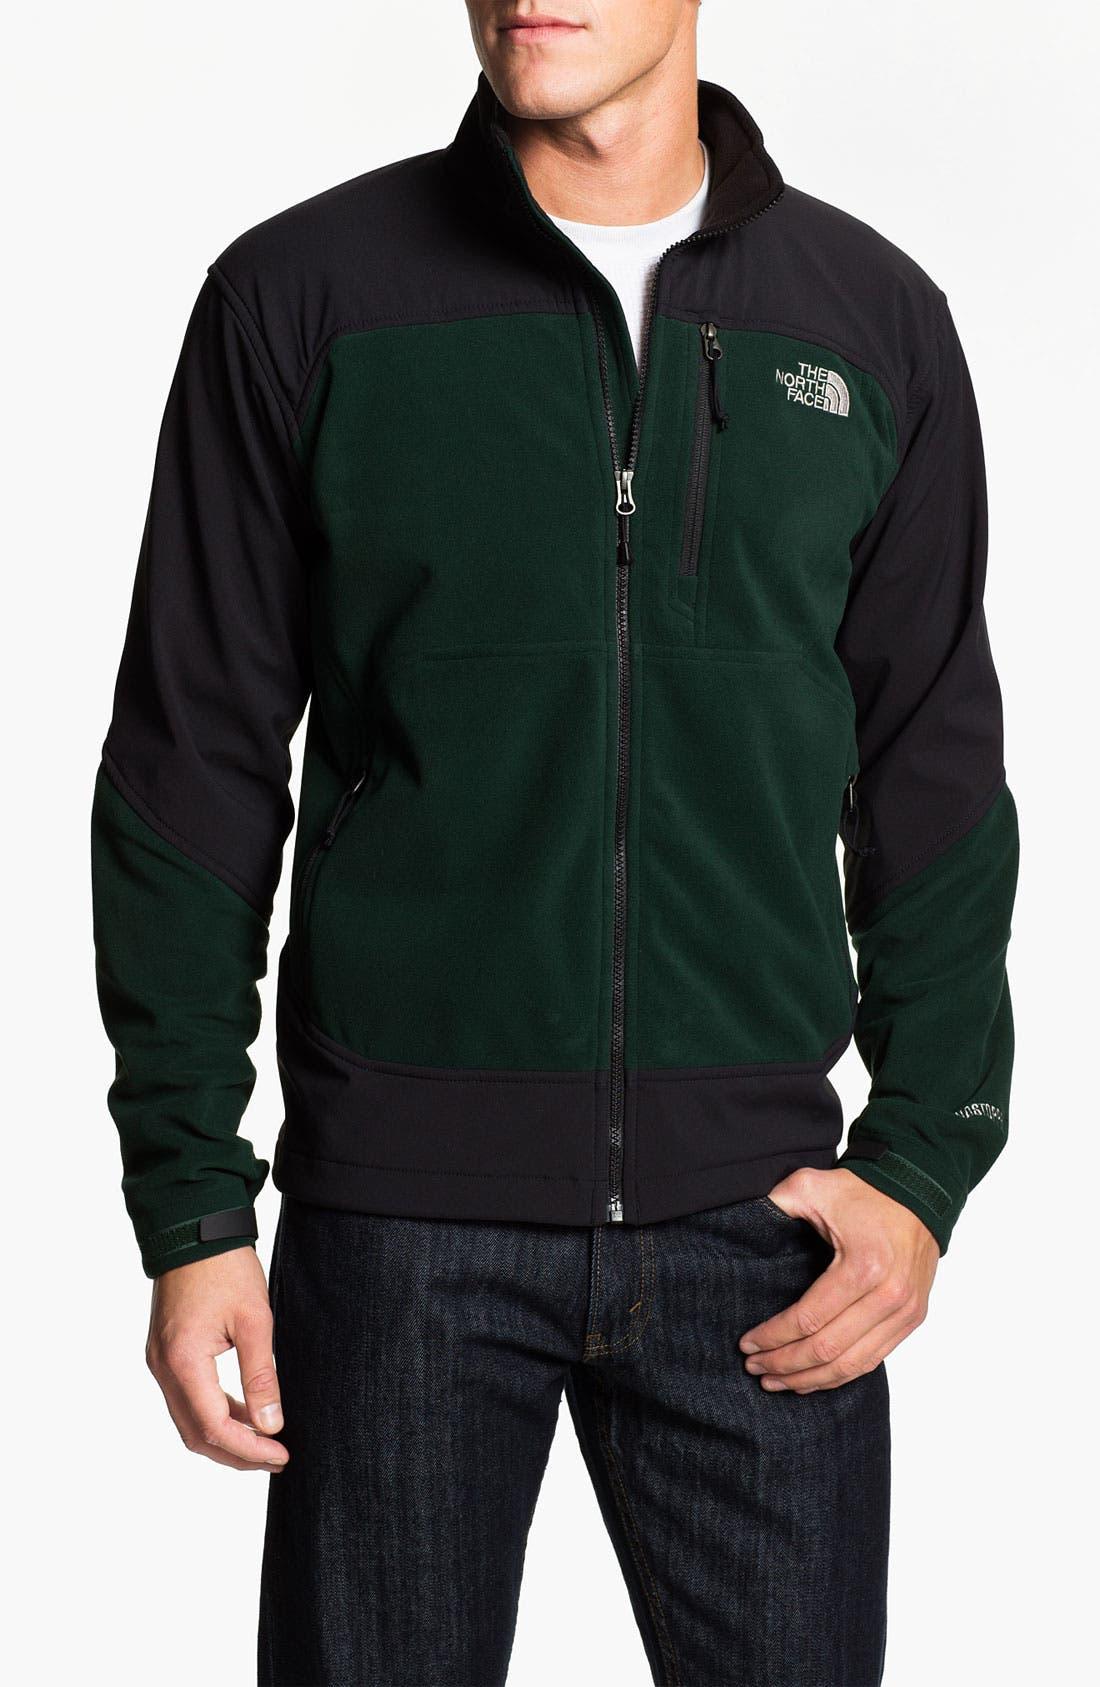 Main Image - The North Face 'Pamir' GORE WINDSTOPPER® Fleece Jacket